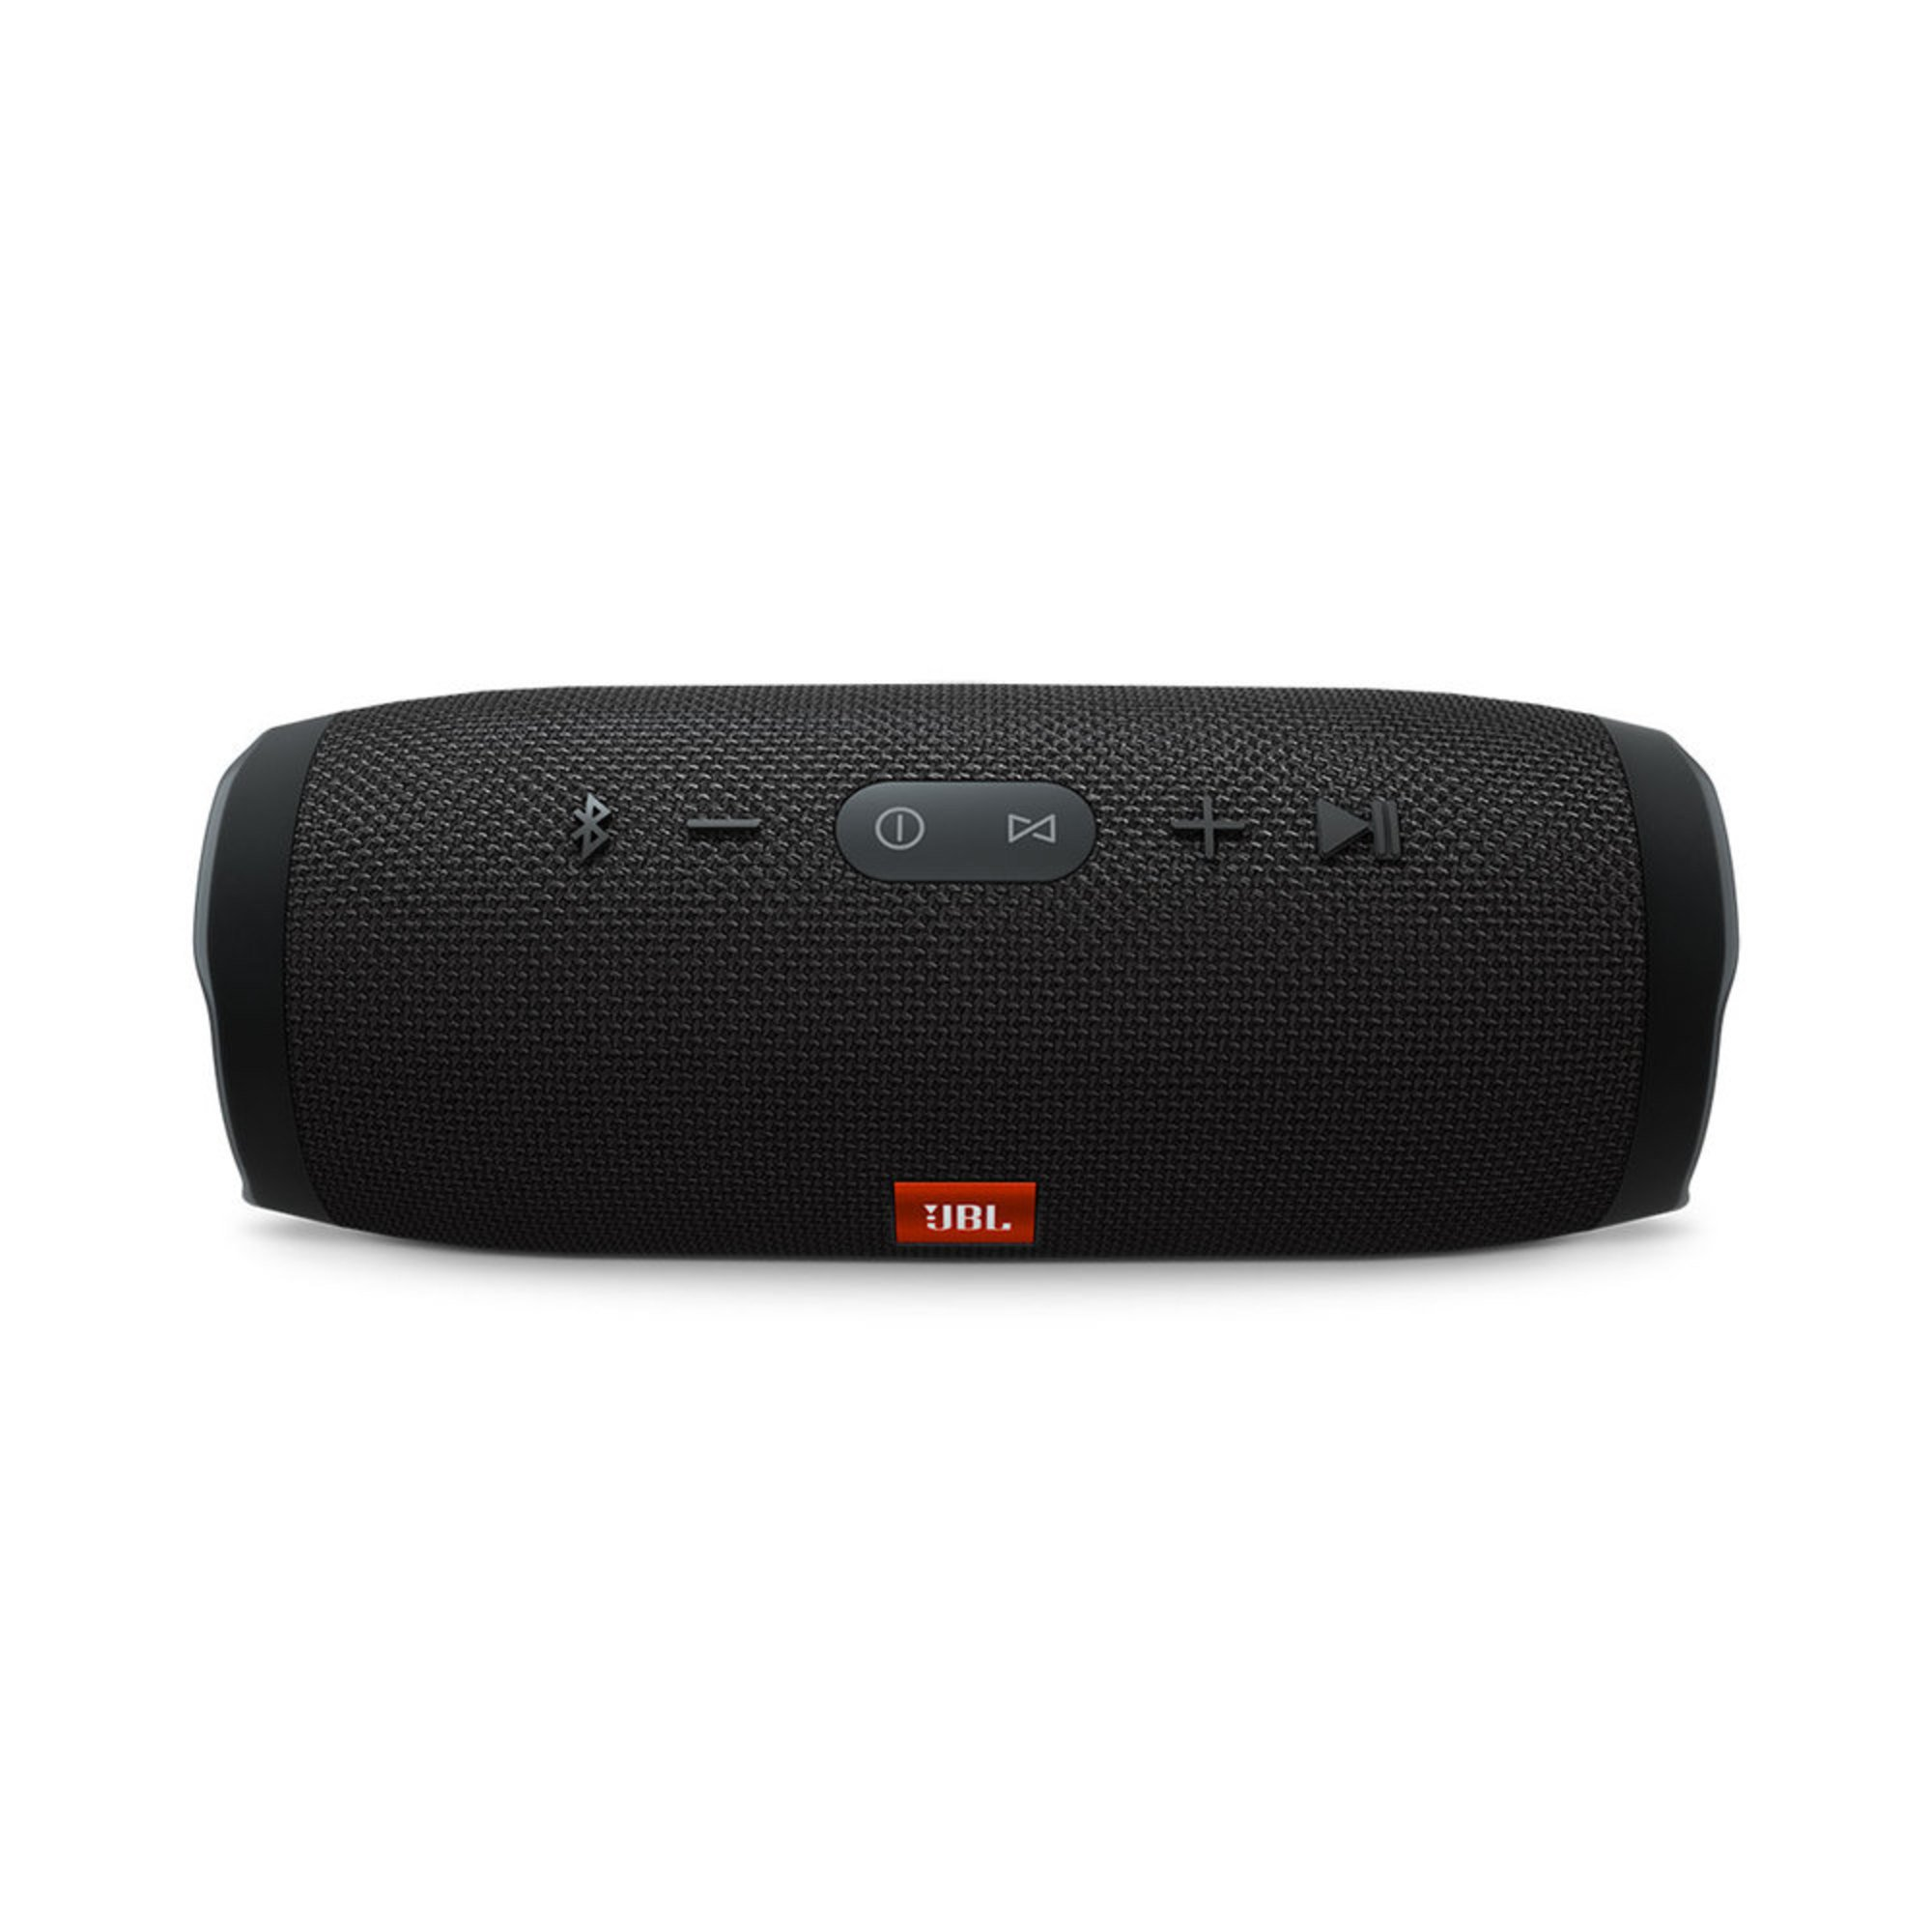 Jbl Charge 4 Waterproof Bluetooth Speaker Bluetooth Wireless Speakers Electronics Shop Your Navy Exchange Official Site